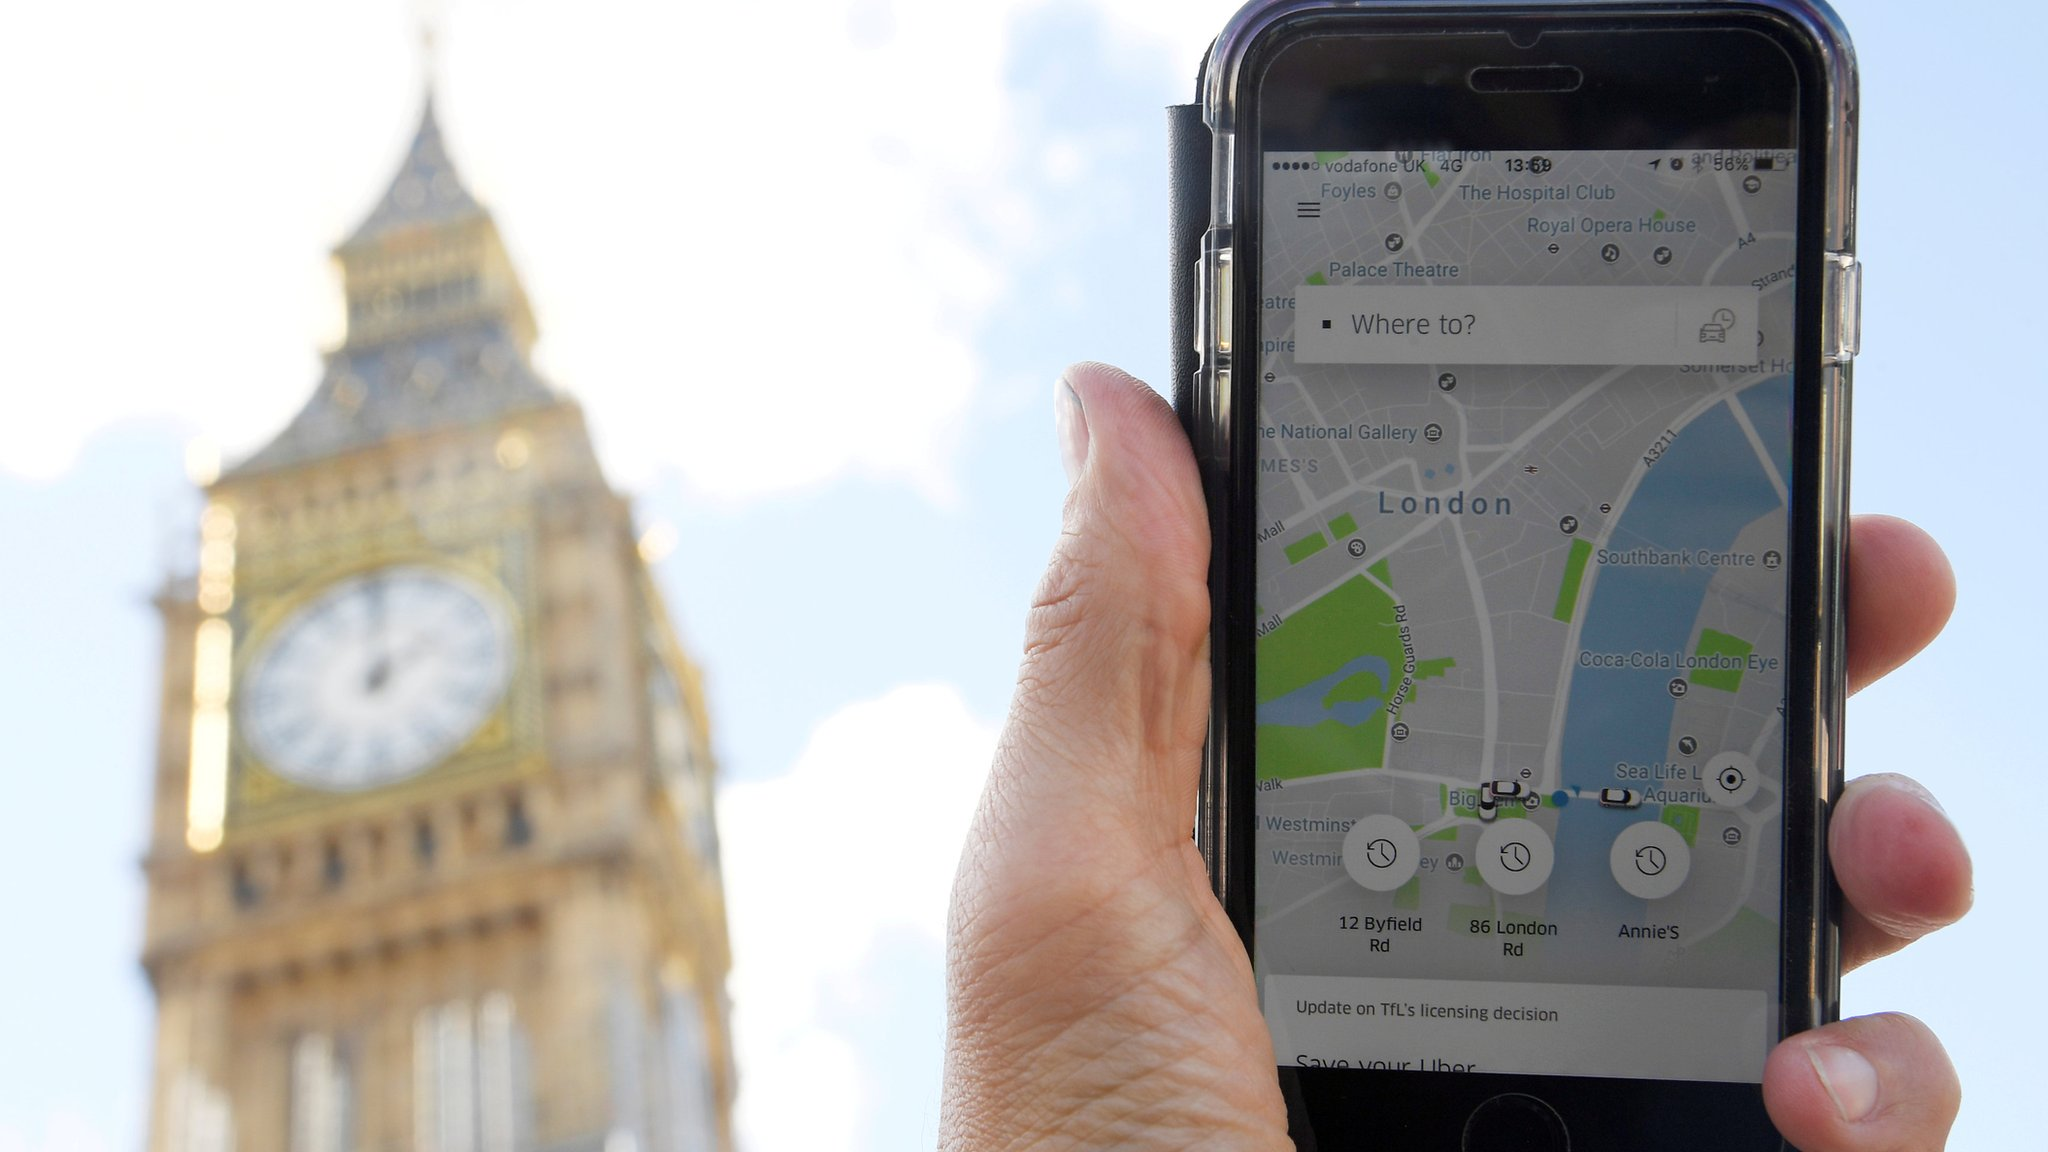 London-registered minicabs 'working in other cities'